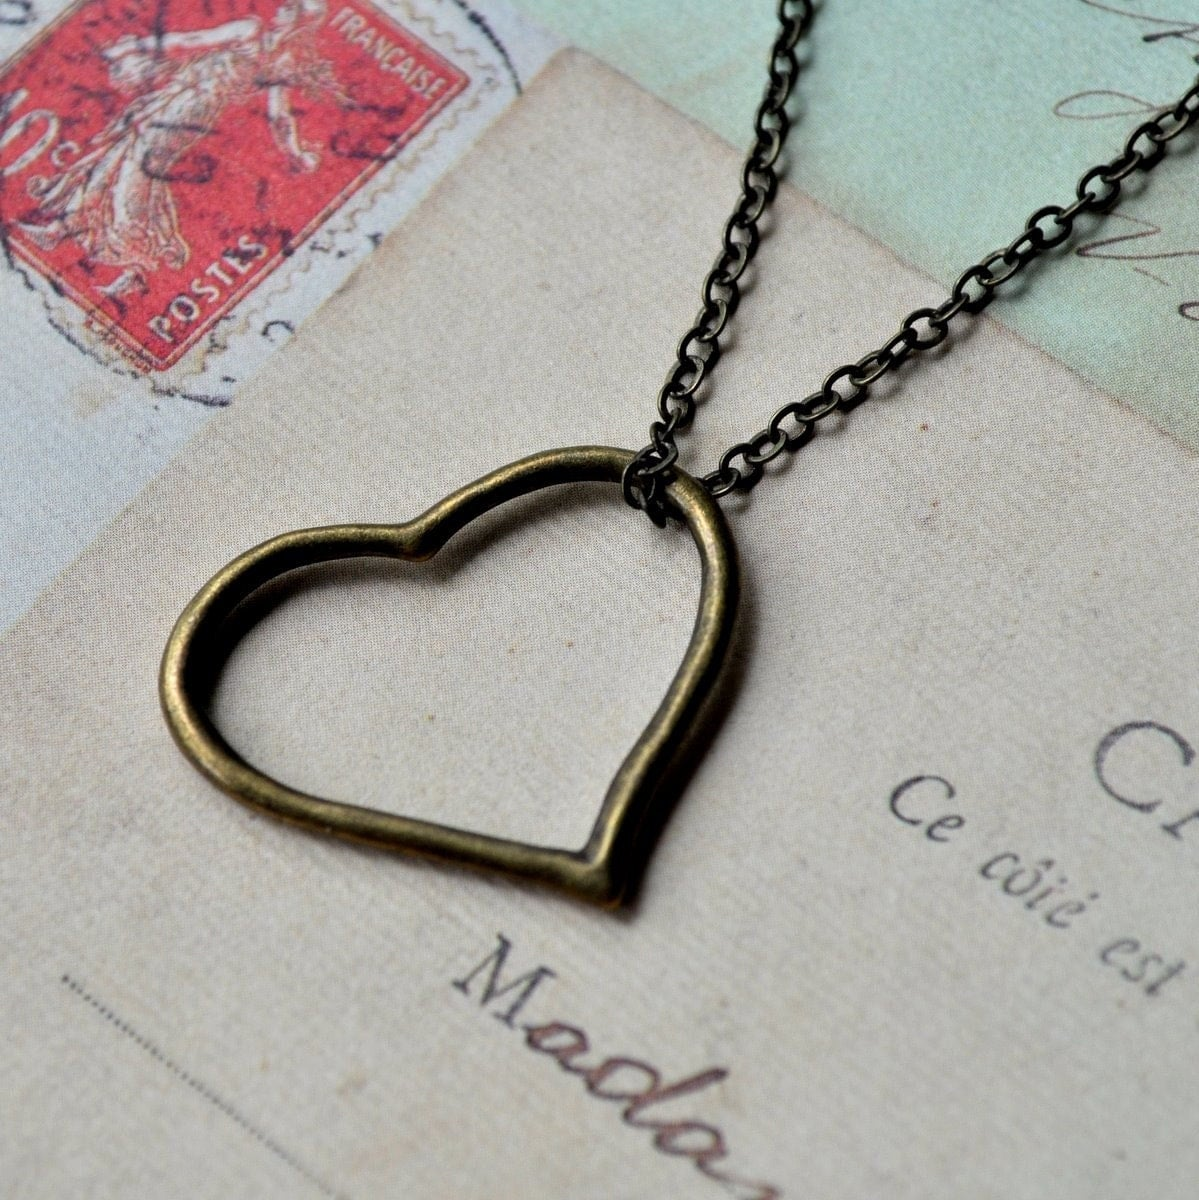 Heart Necklace - Brass heart on delicate brass chain - Valentines Love Sweetheart. By Vintette on Etsy.